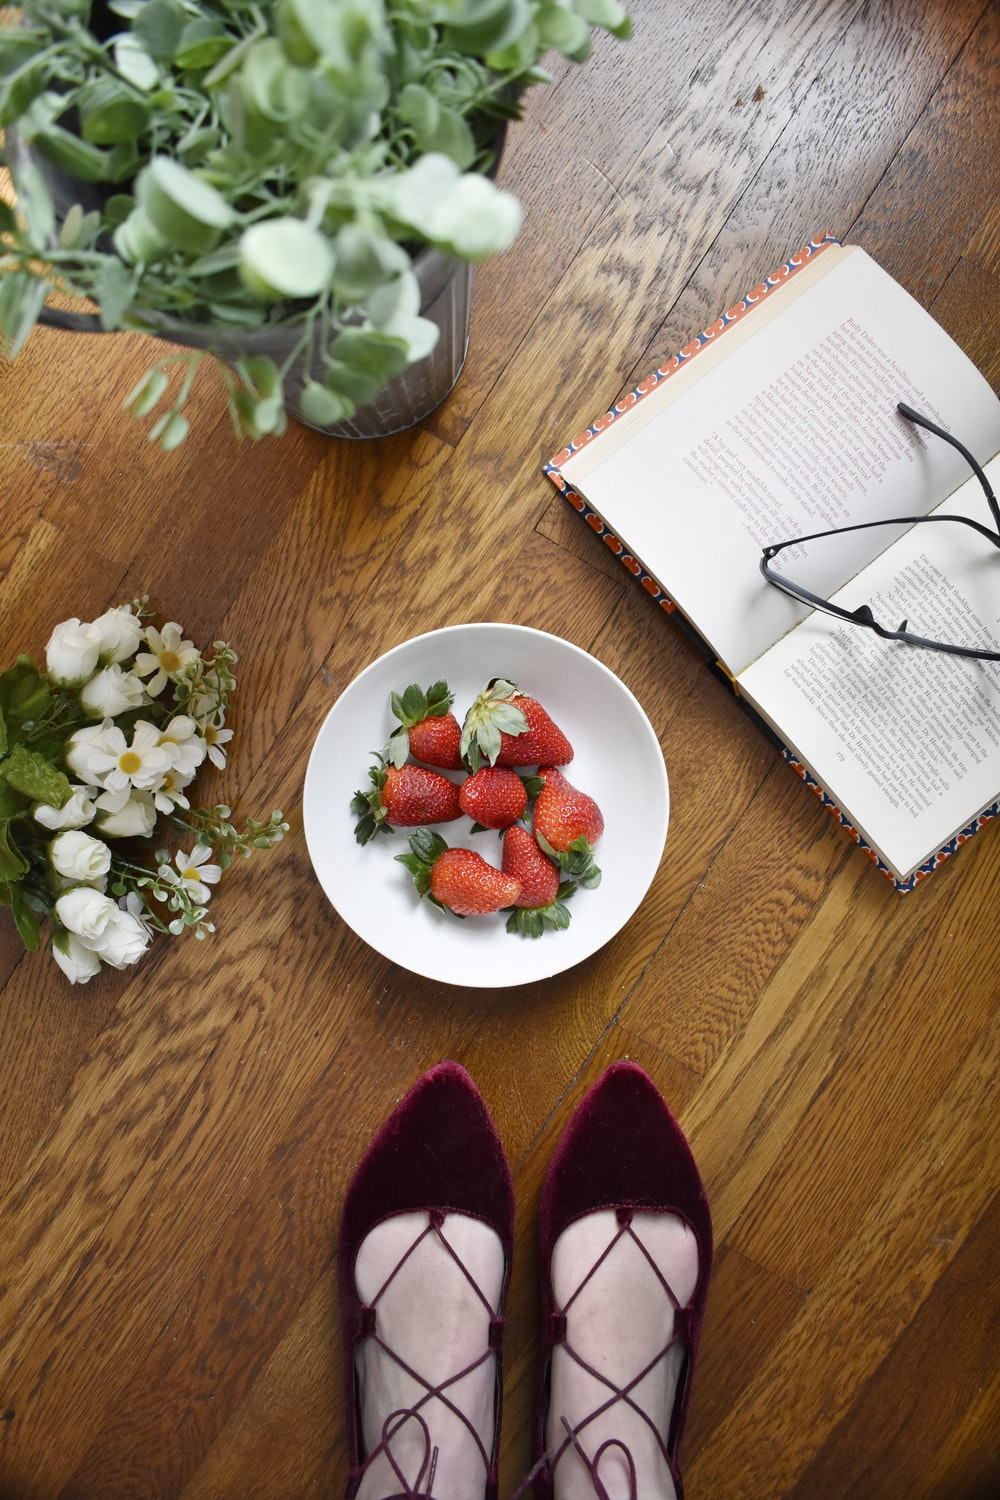 strawberries on bowl beside book